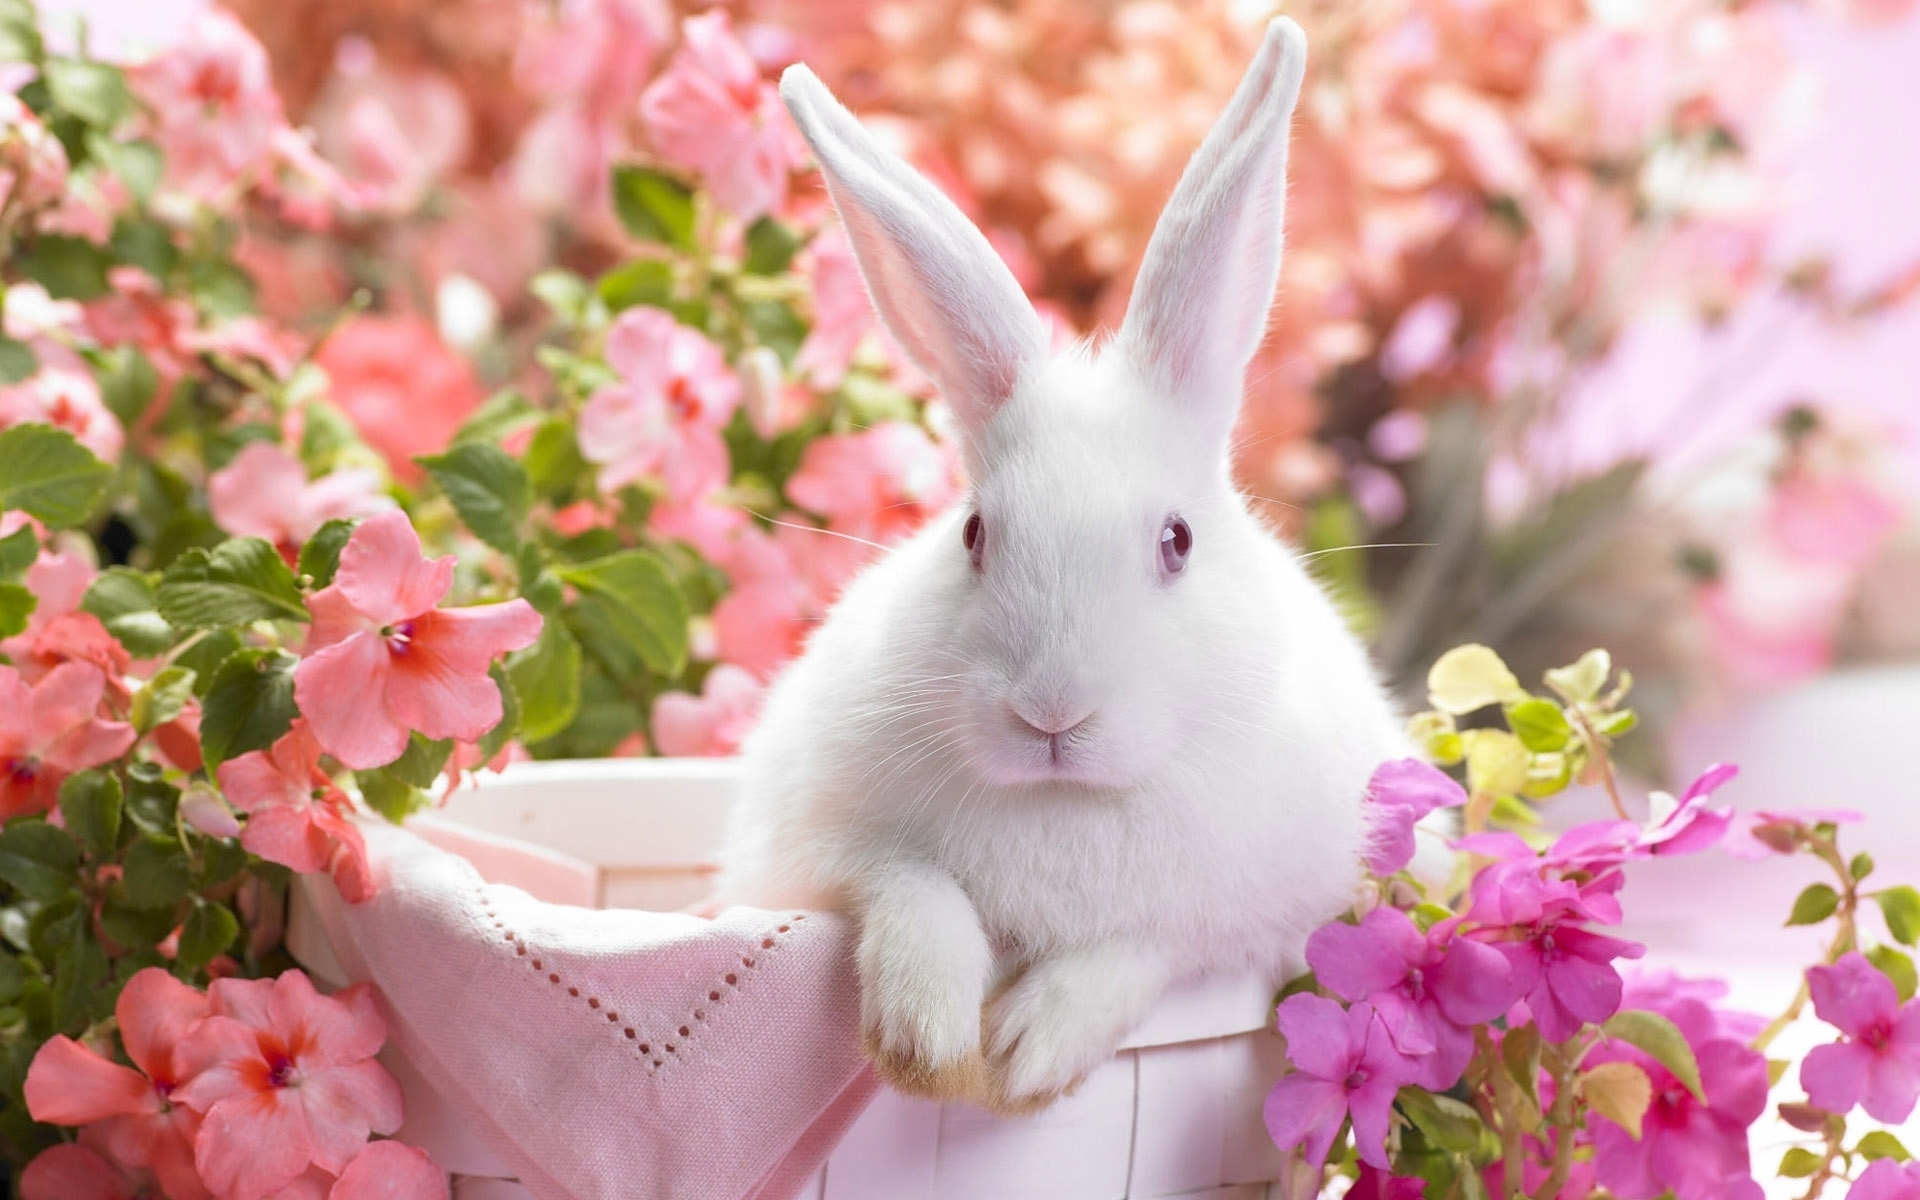 42424 download wallpaper Animals, Rabbits screensavers and pictures for free